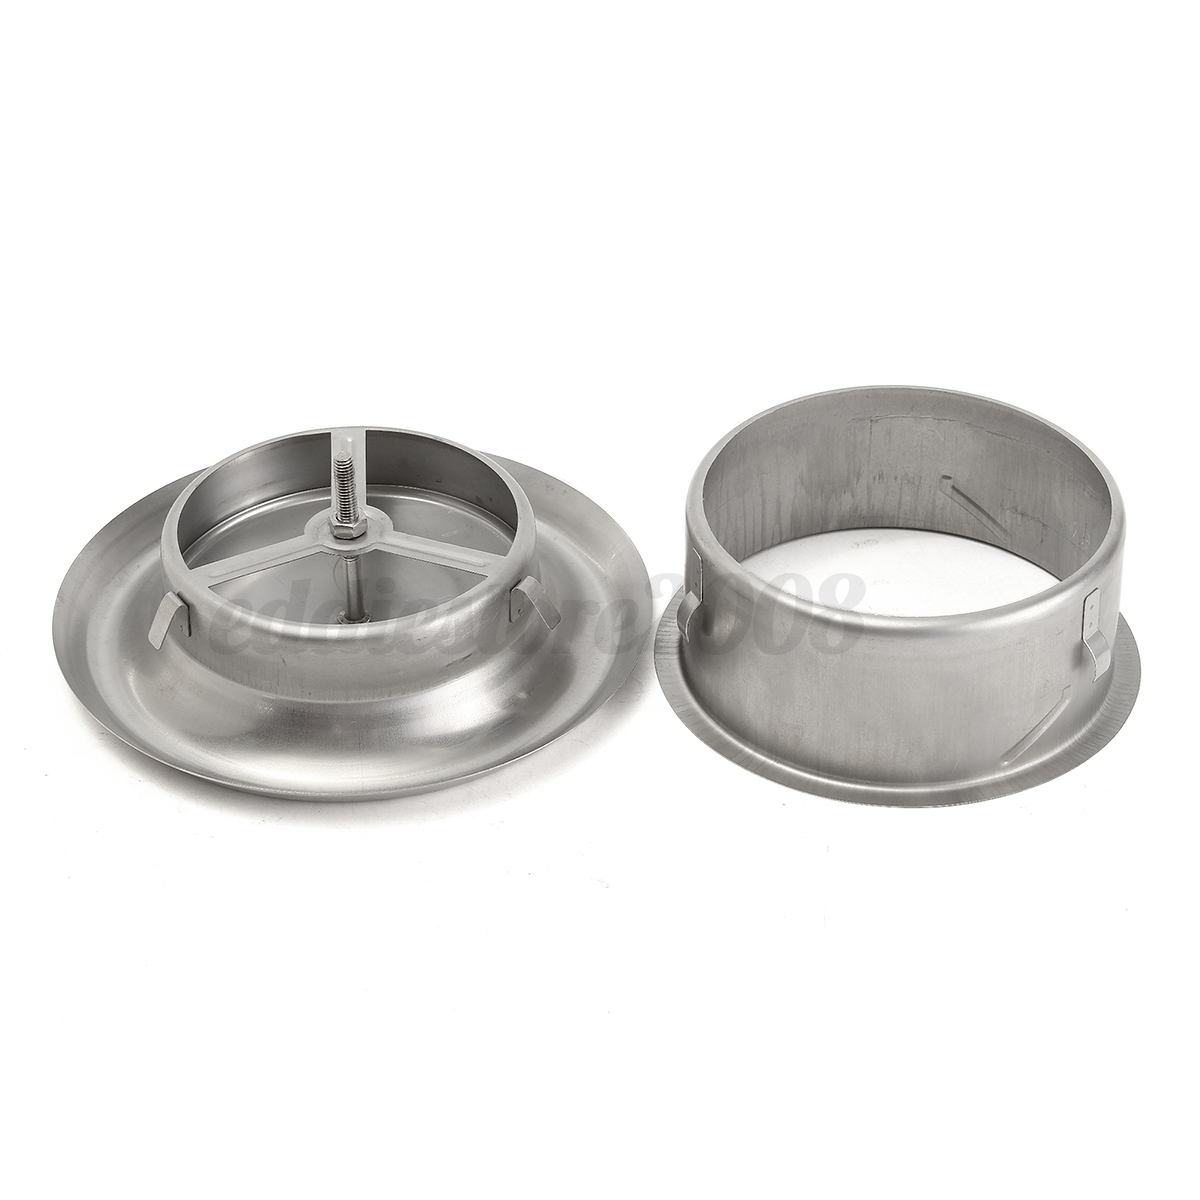 Stainless steel ventilation wall air vent ceiling exhaust